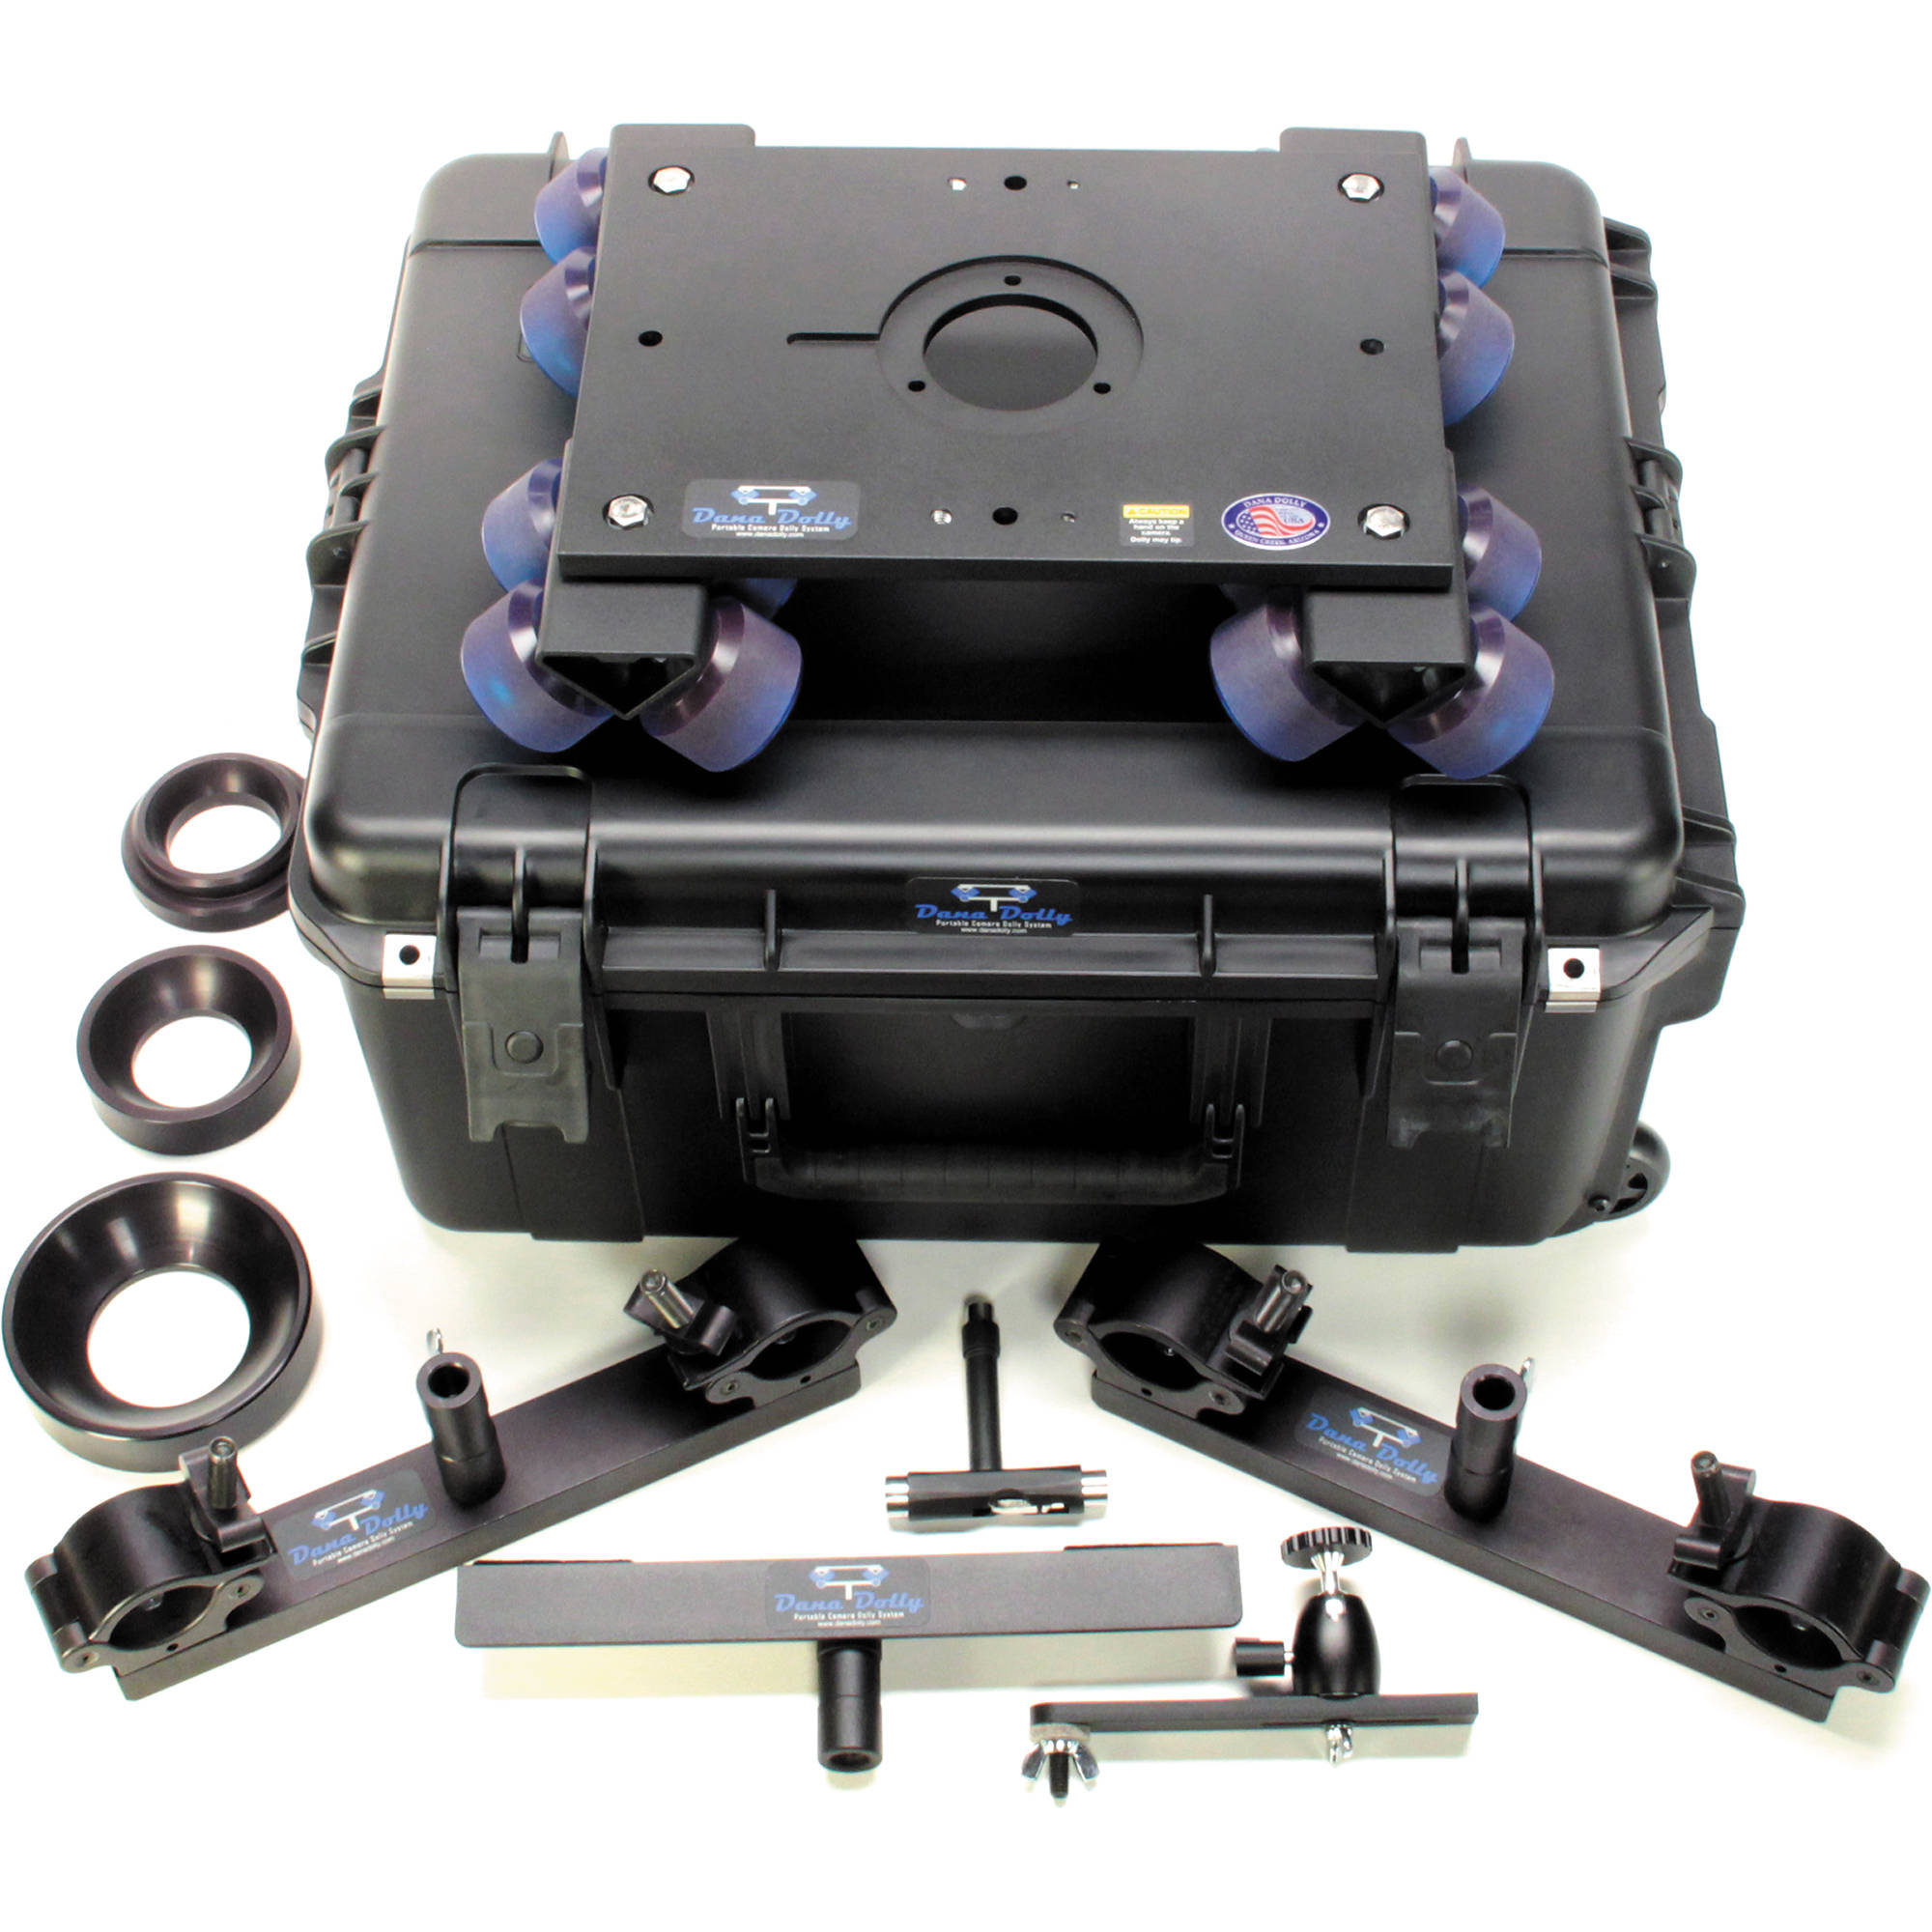 dana_dolly_ddurk1_portable_dolly_system_rental_1047336